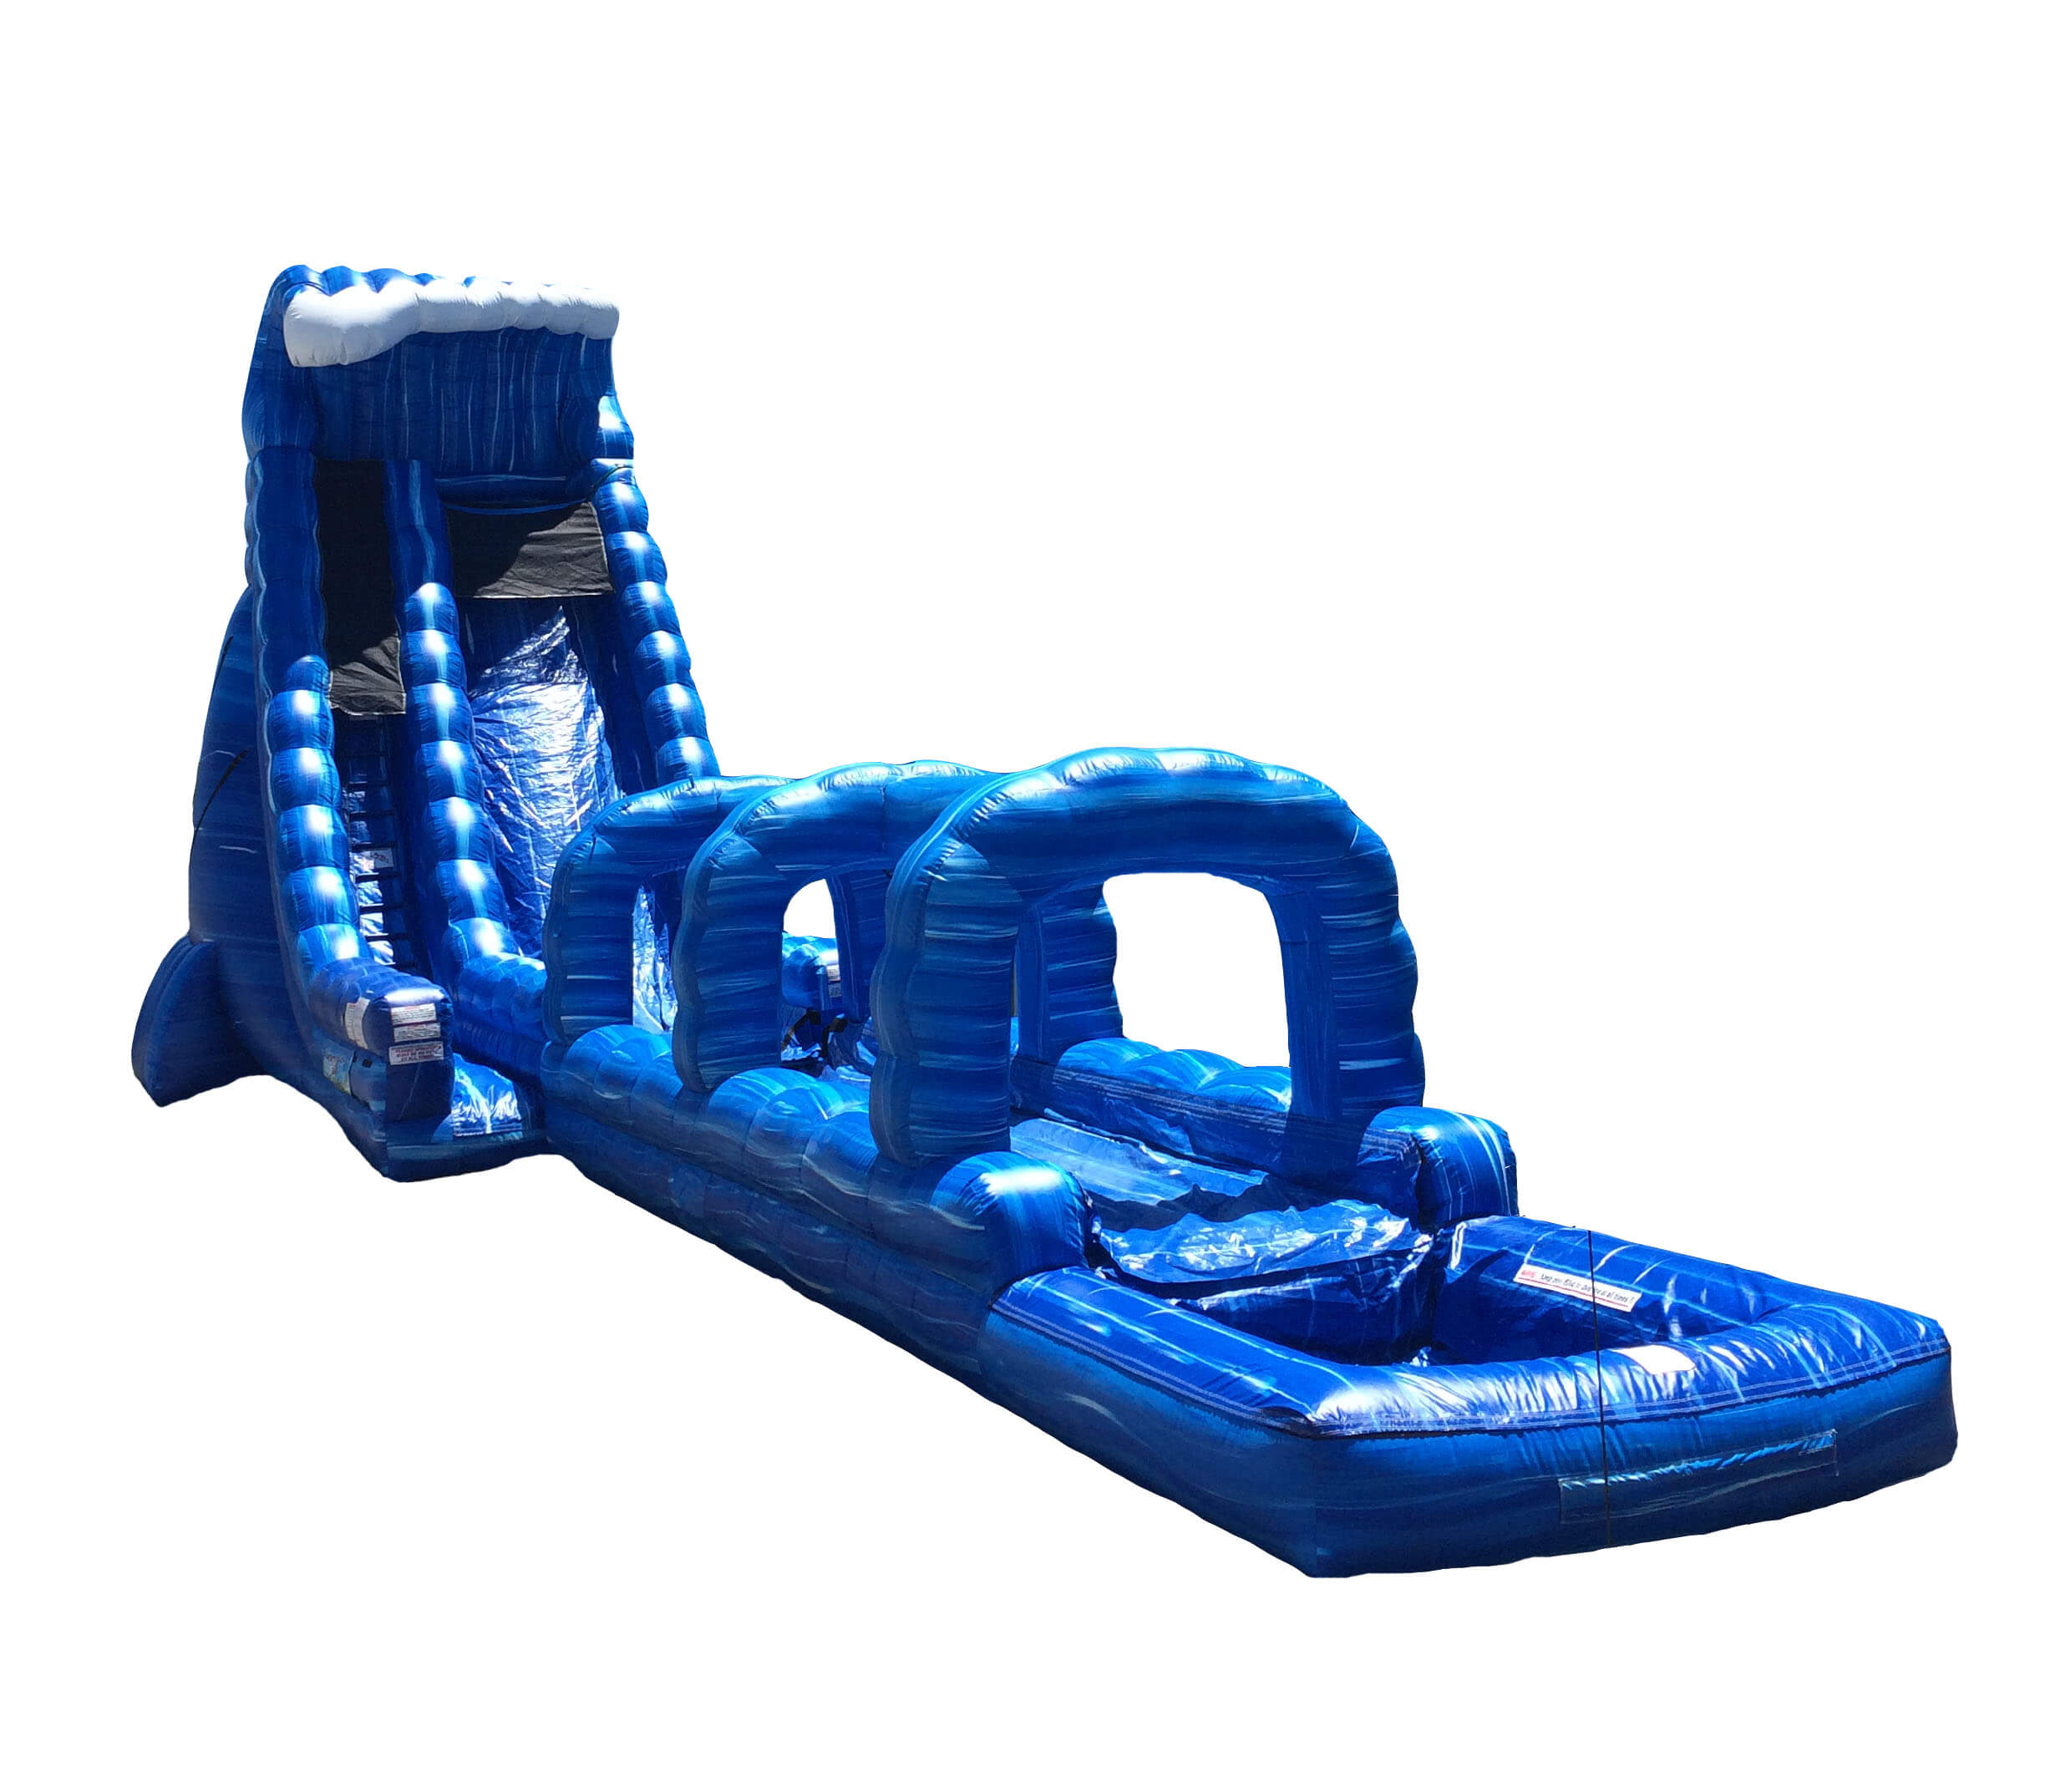 Inflatable Water Slide Party Rentals: Extremely Fun Rentals